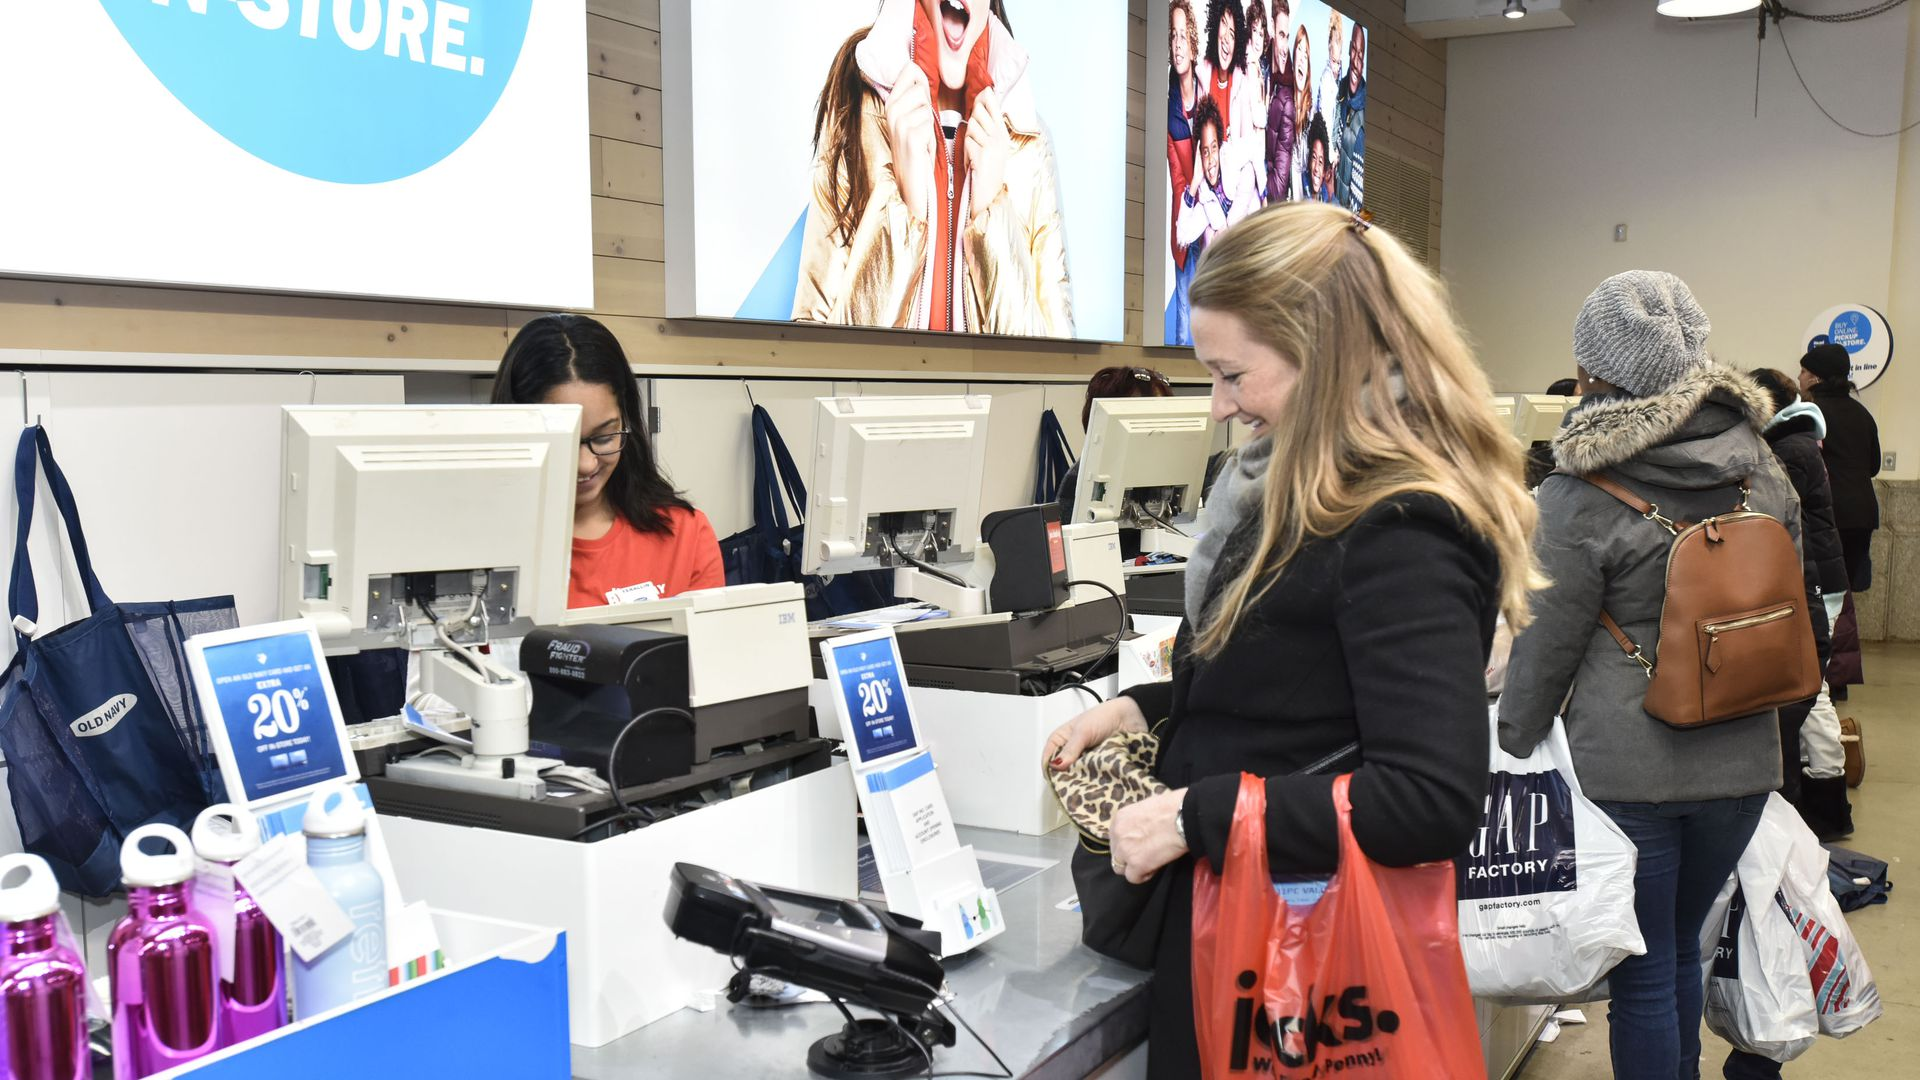 In this image, a woman in a winter coat pays for her items at Old Navy.